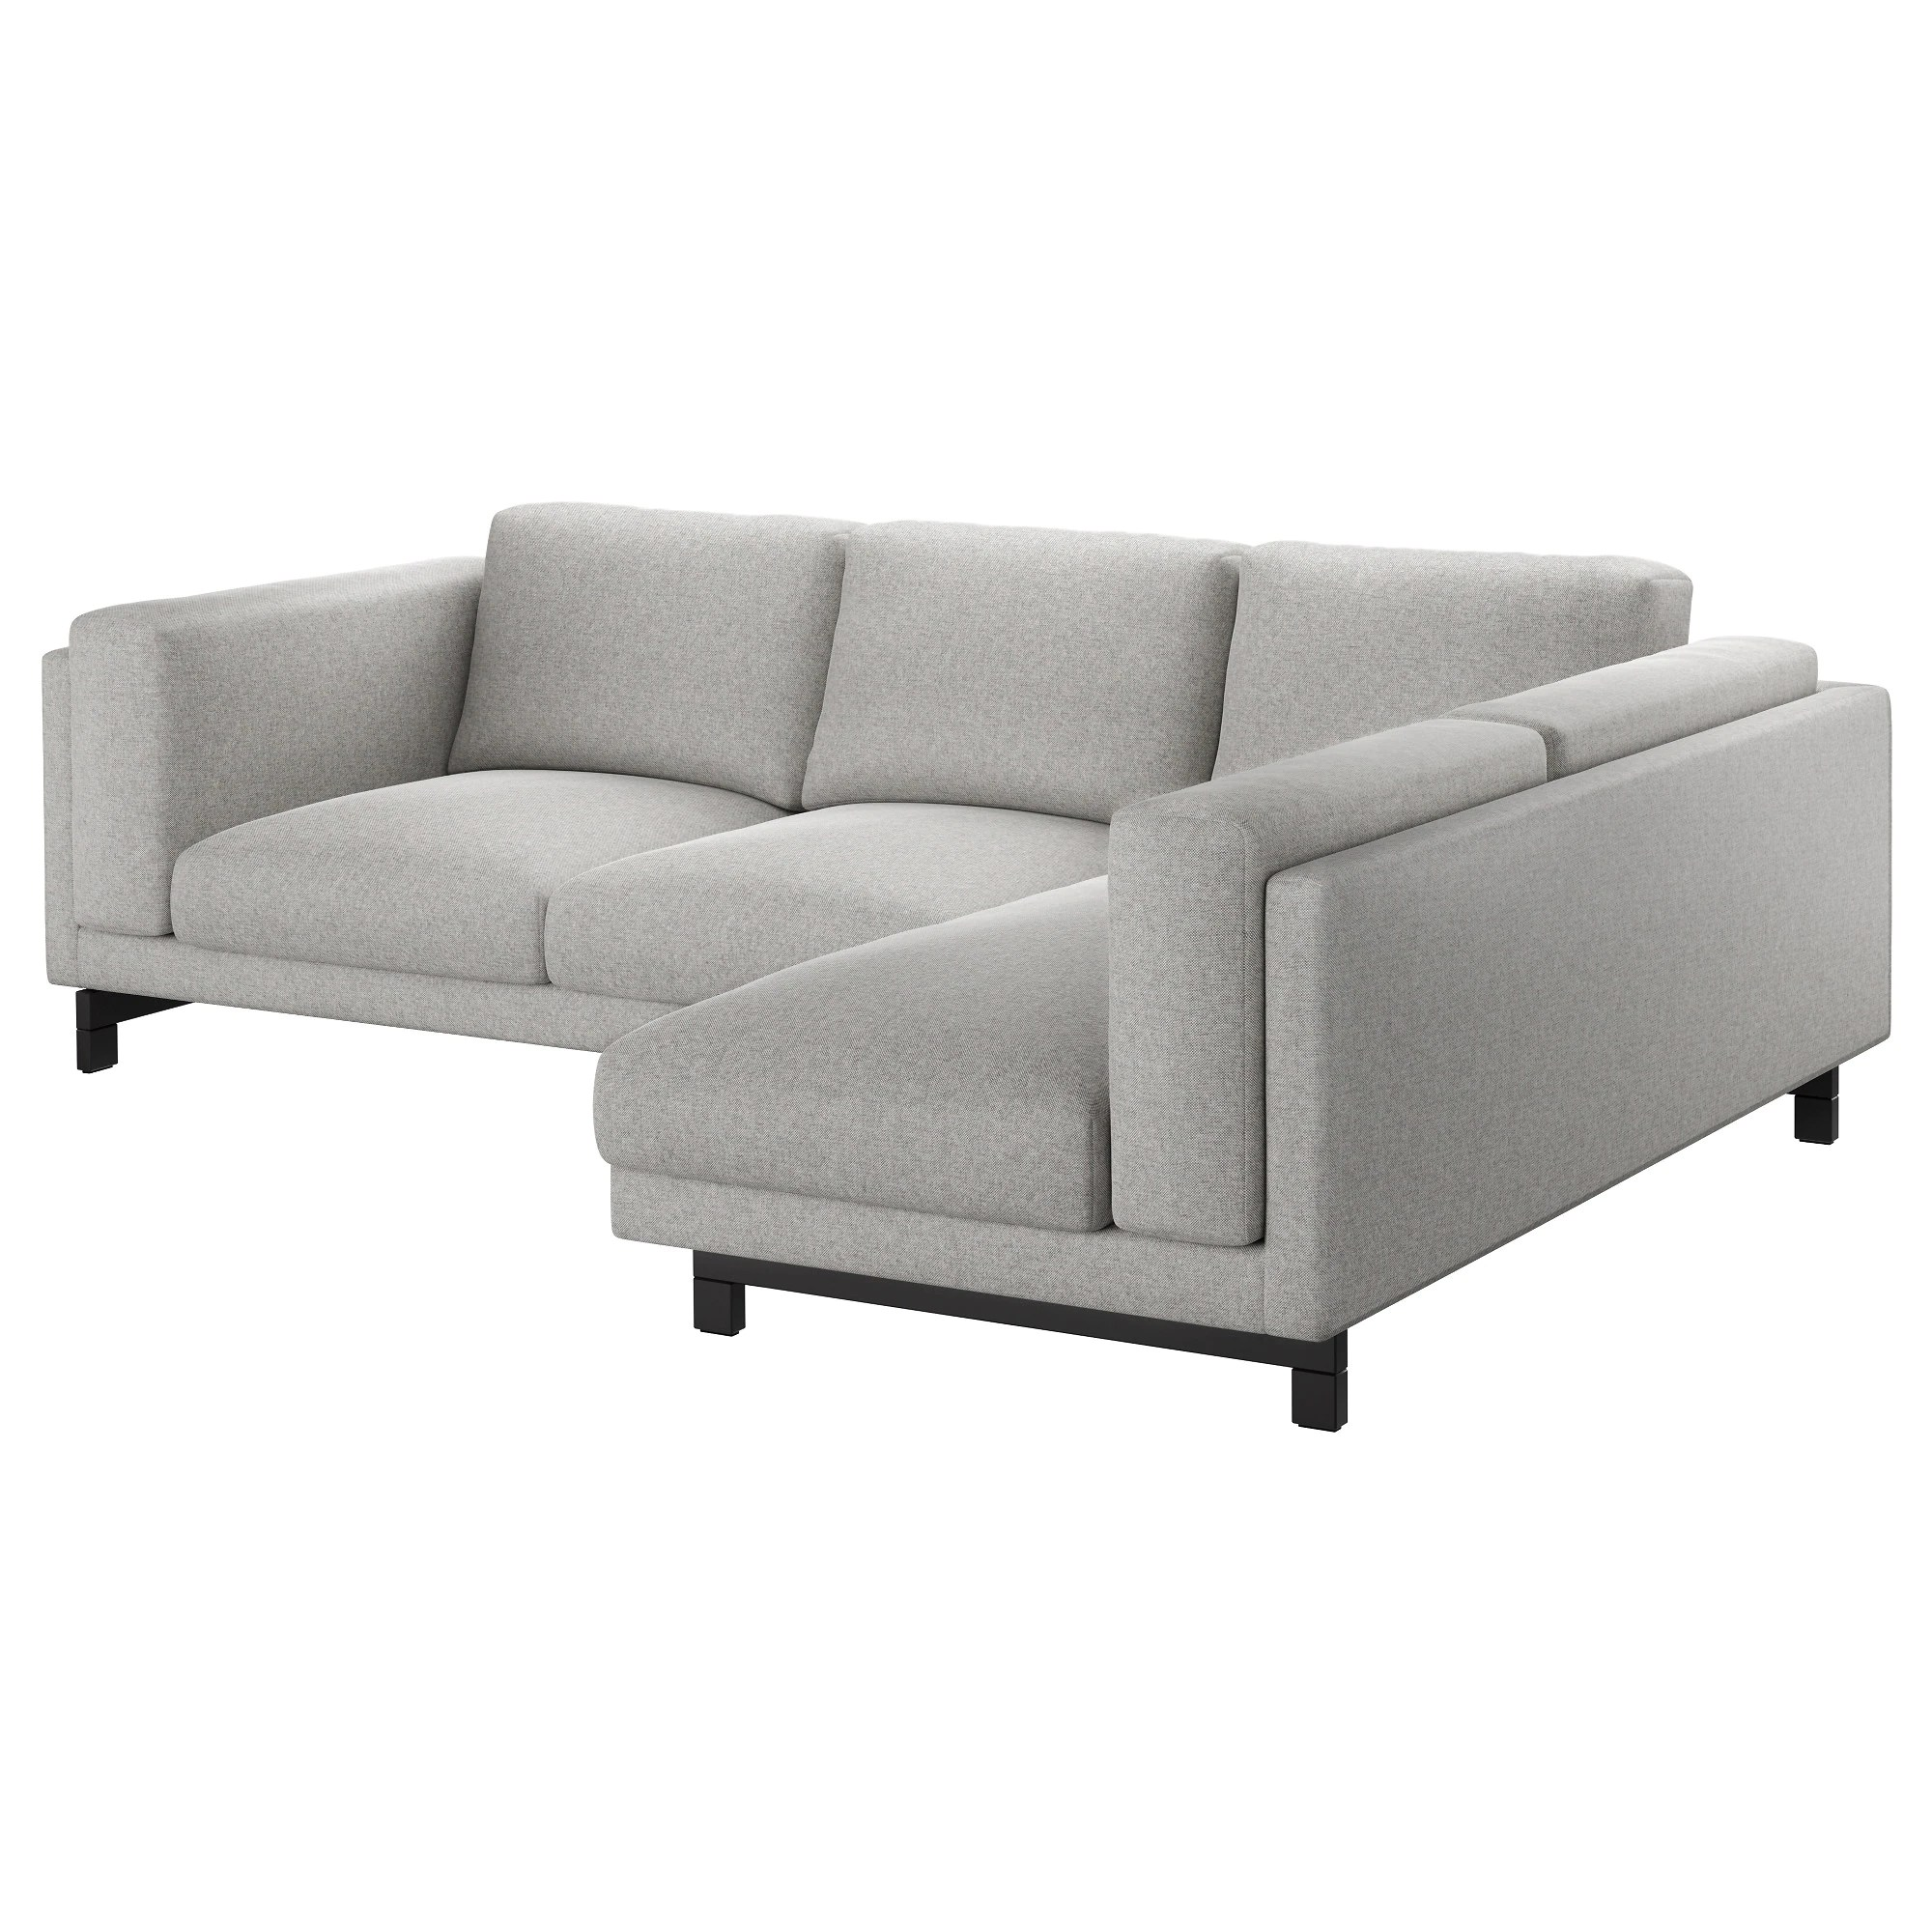 Sofa 3er Ikea Nockeby Sofa With Chaise Right Tallmyra Tallmyra Chrome Plated White Black Chrome Plated